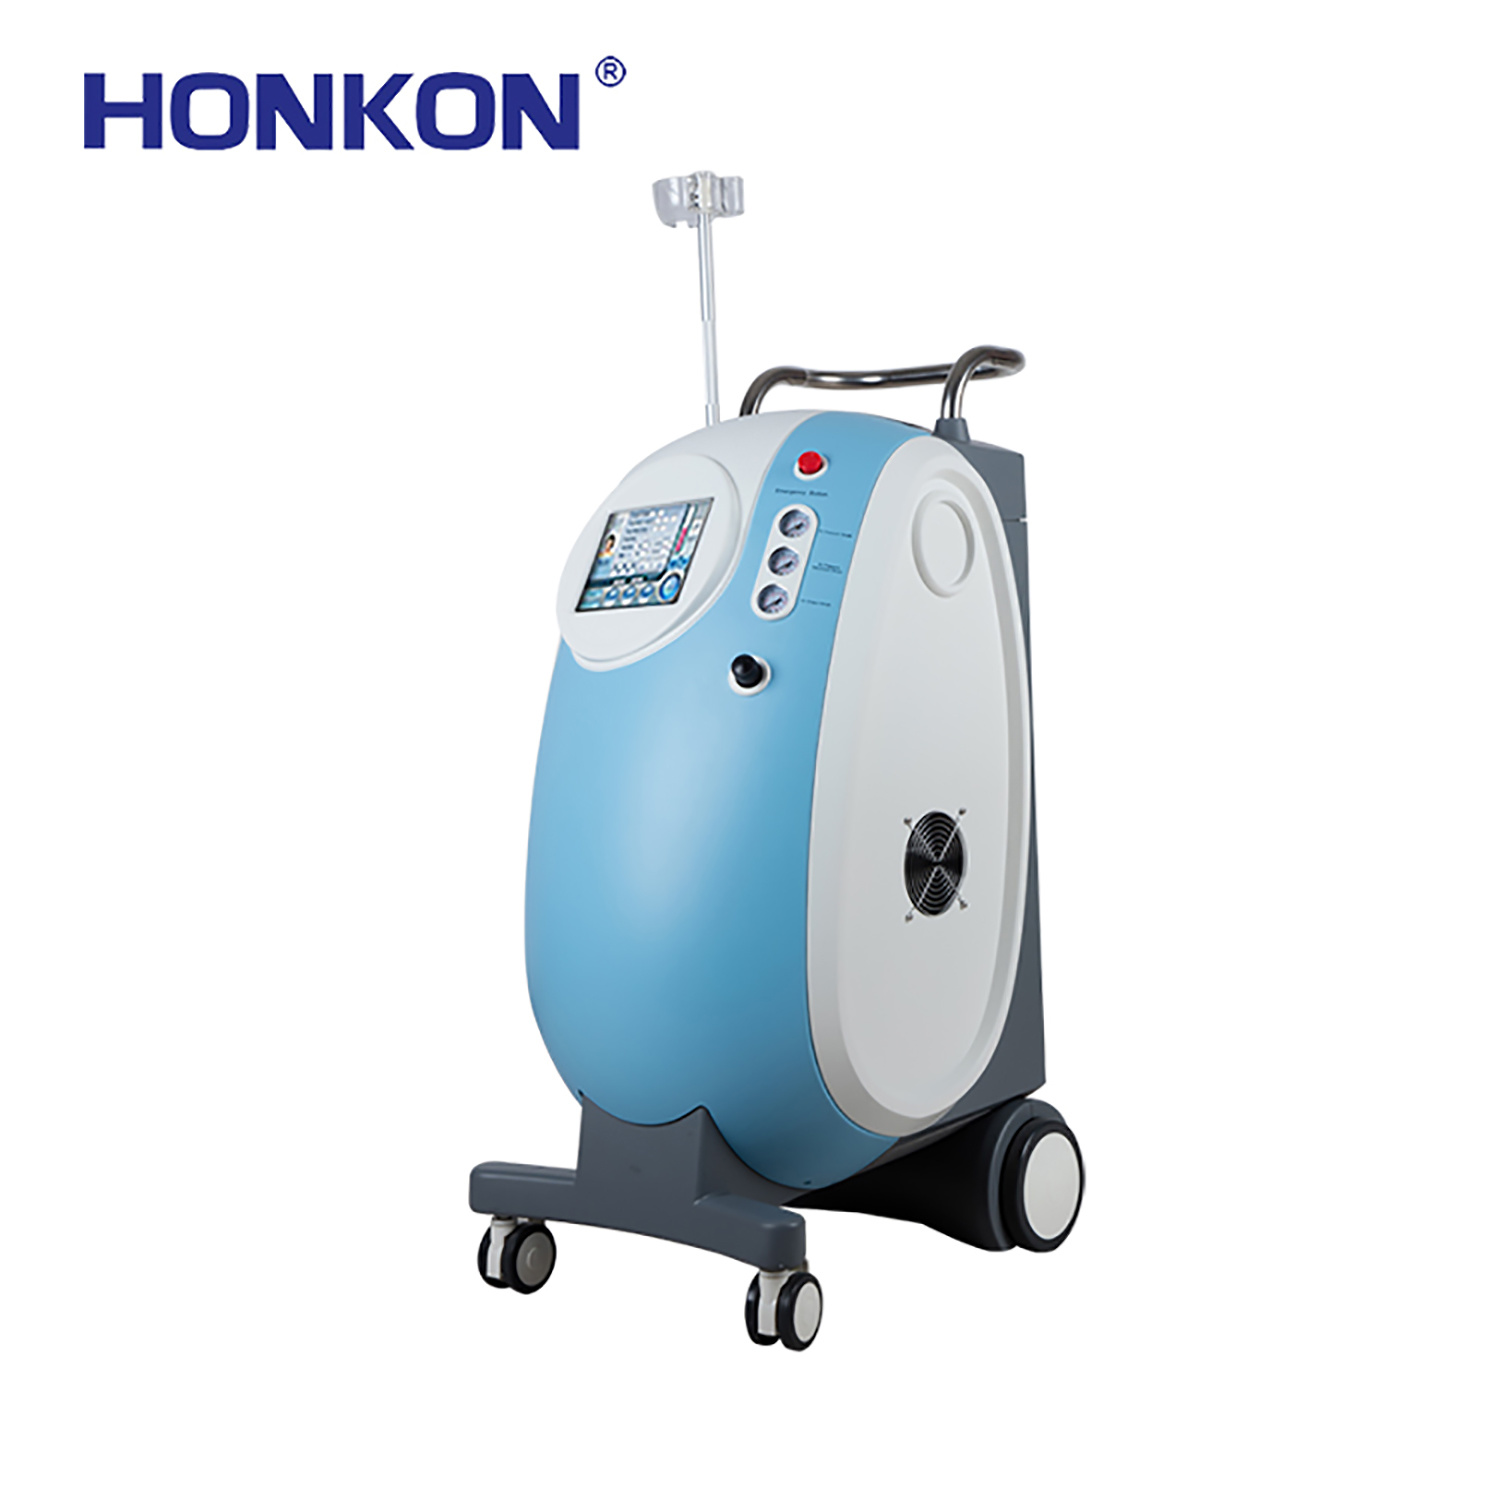 Pure Oxygen Water Spray Jet Facial Skin Rejuvenation Whitening Machine pictures & photos